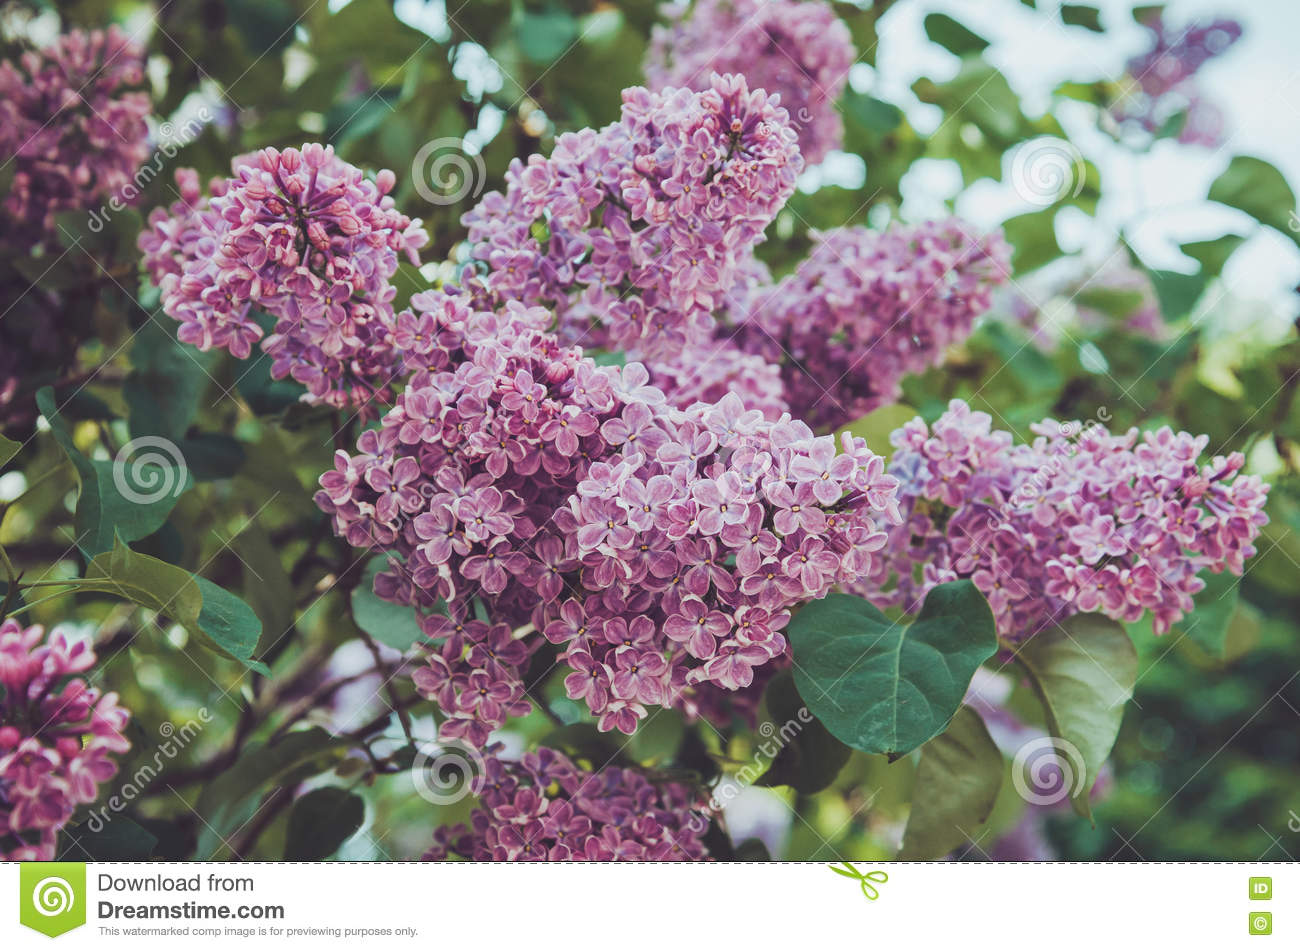 Floral spring purple lilac flower in sunlight background. Summer park outdoor abstract nature. Bloom macro pink flowers